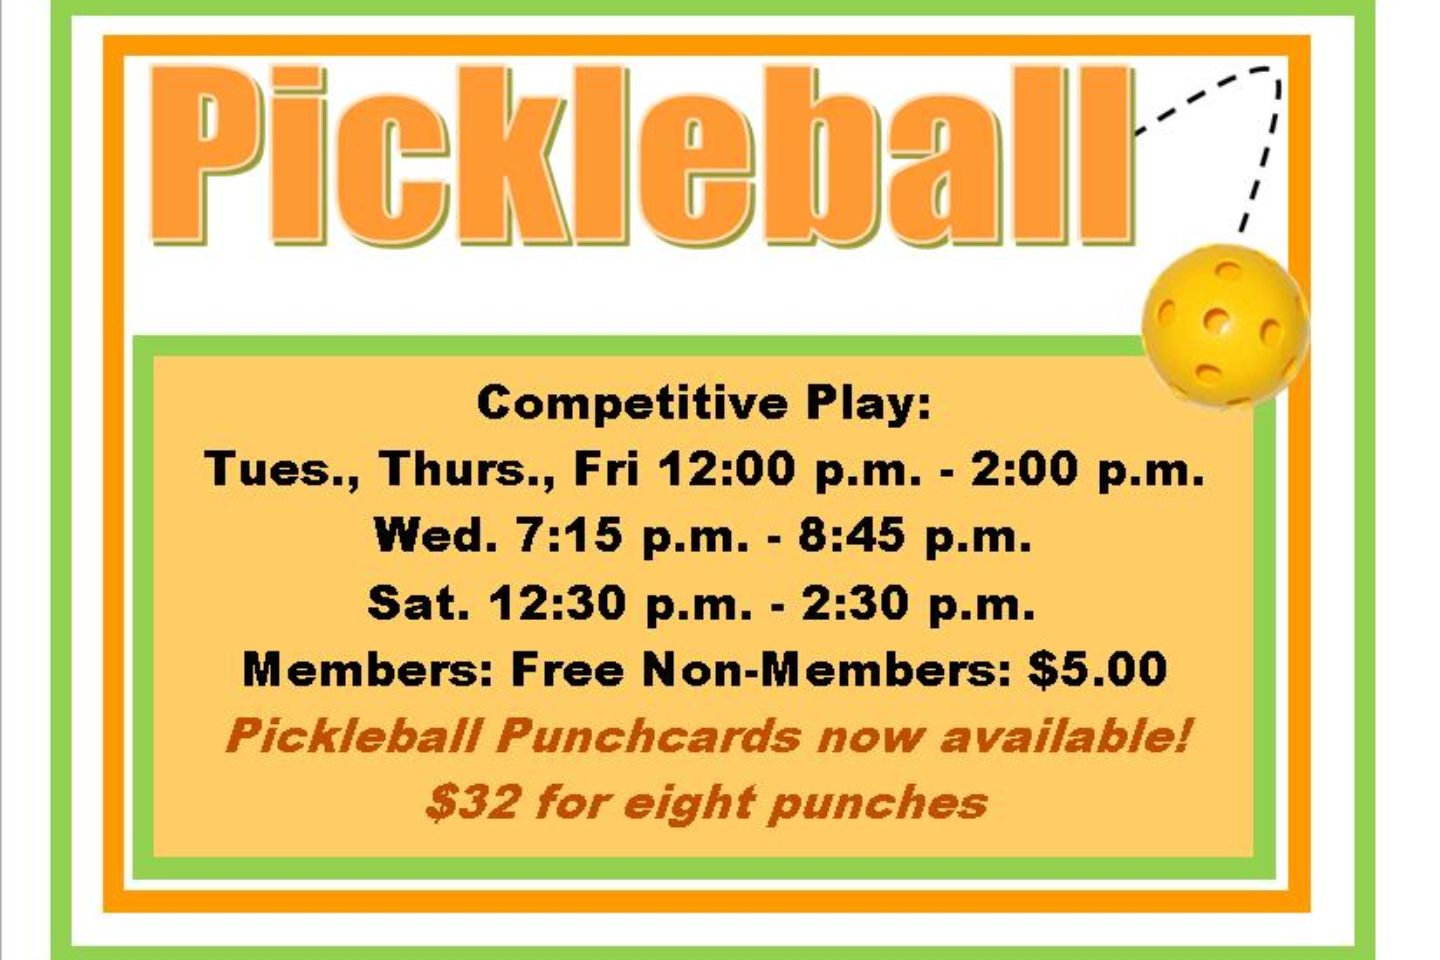 Pickleball times